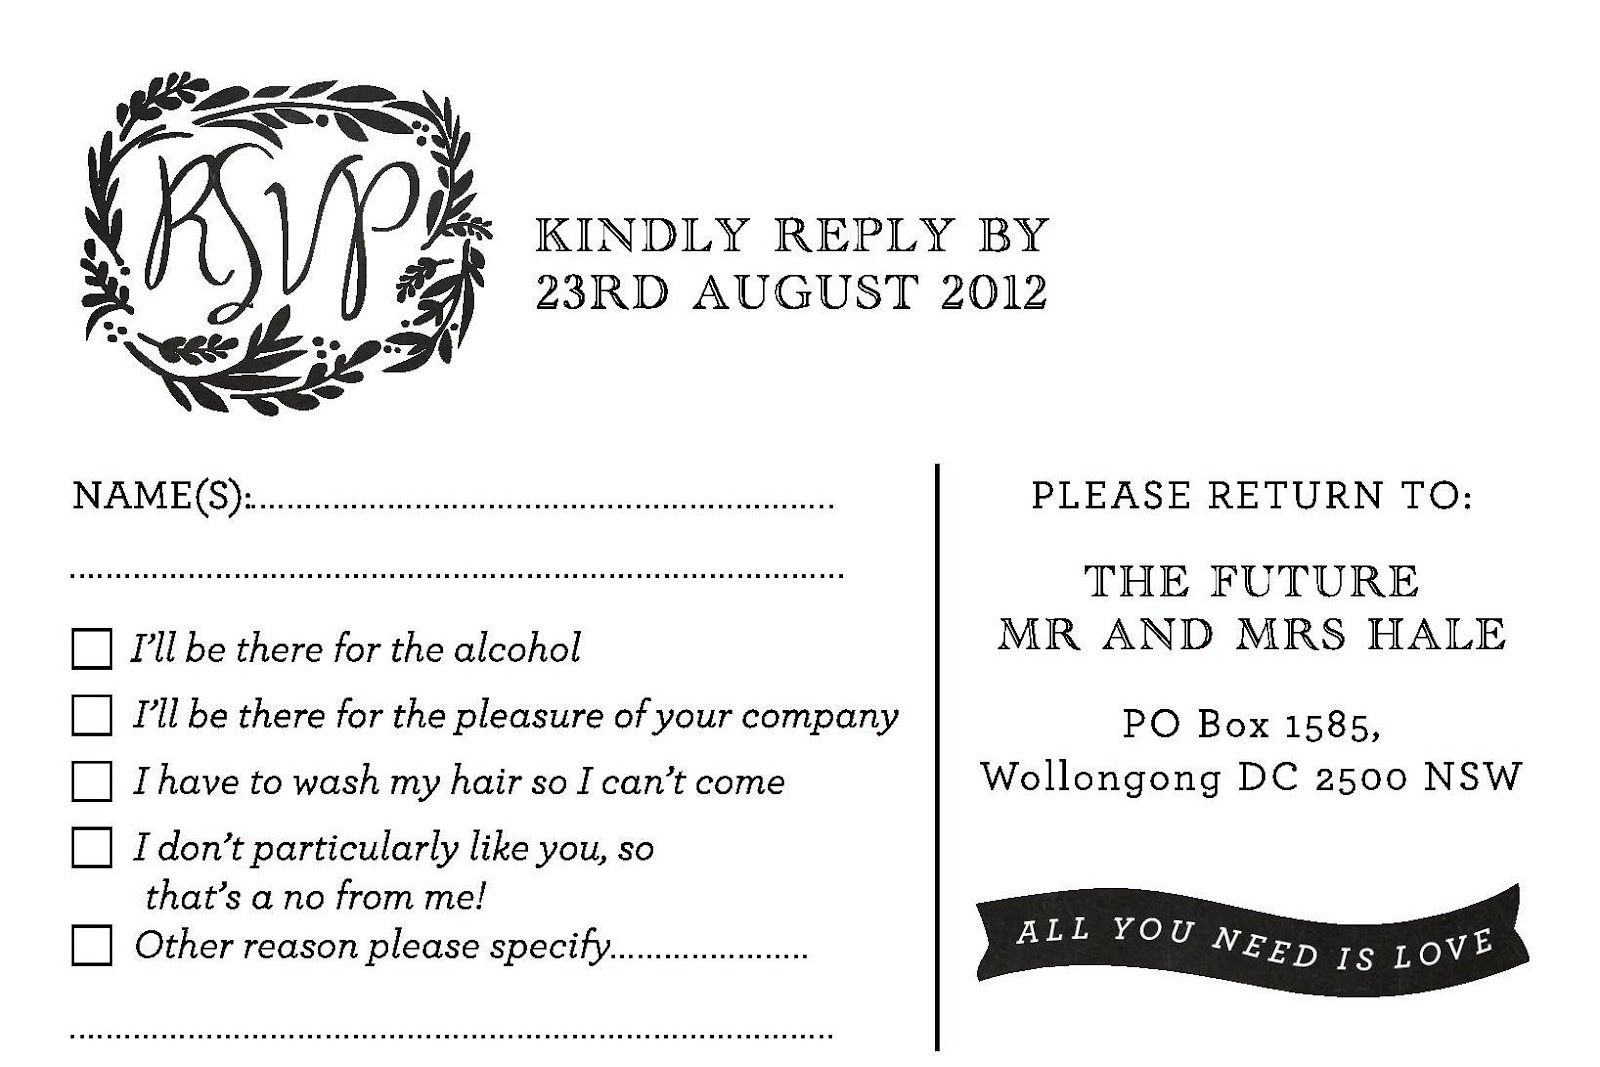 Funny Wedding Invitation Wording: Funny Wedding Rsvp Wording — Stock Image